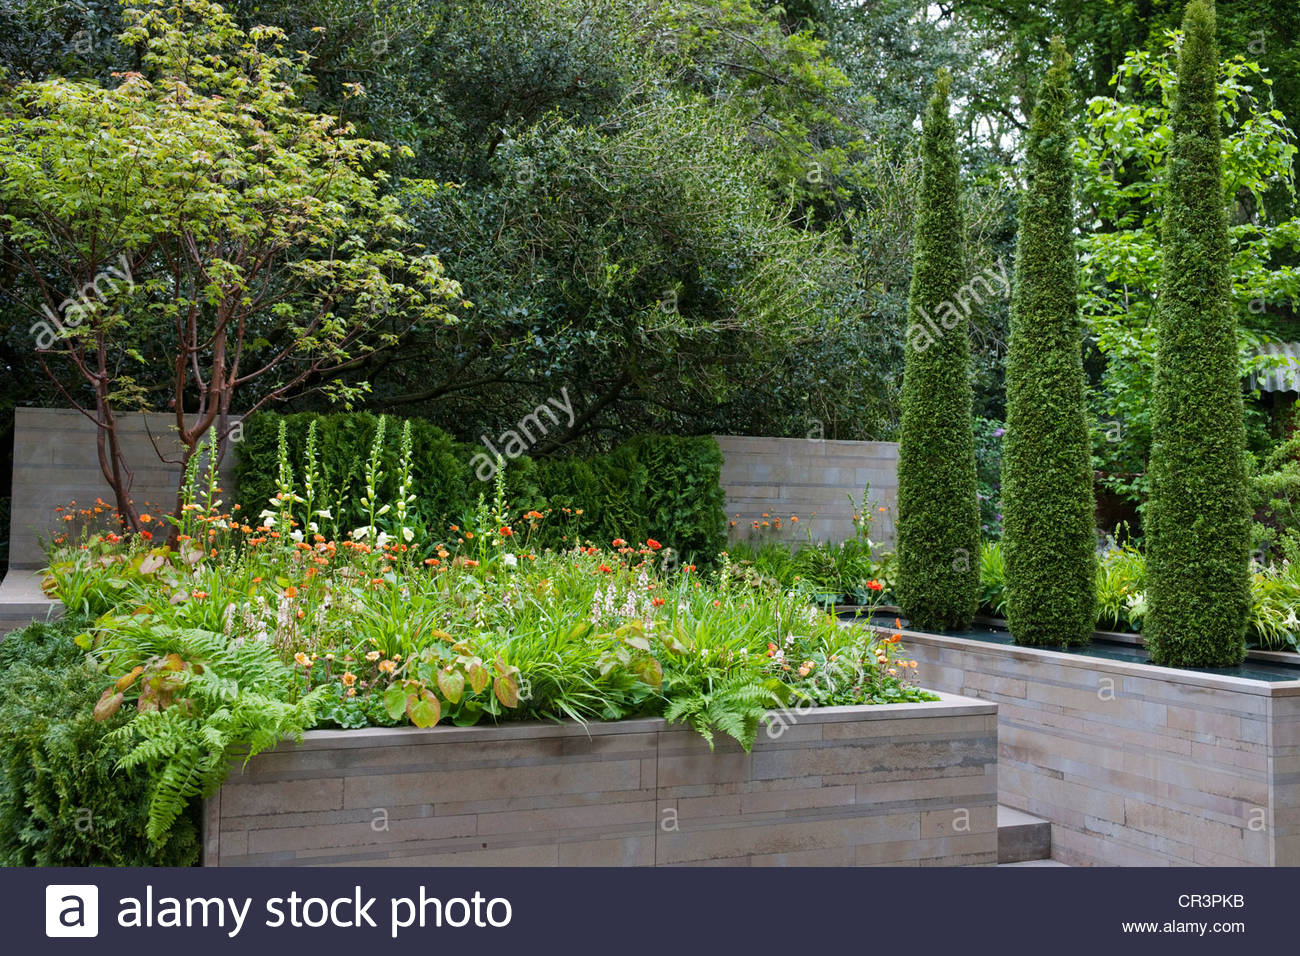 Charming The APCO Garden (Artisan Garden) By Willmott Whyte A RHS Chelsea Flower  Show 2012